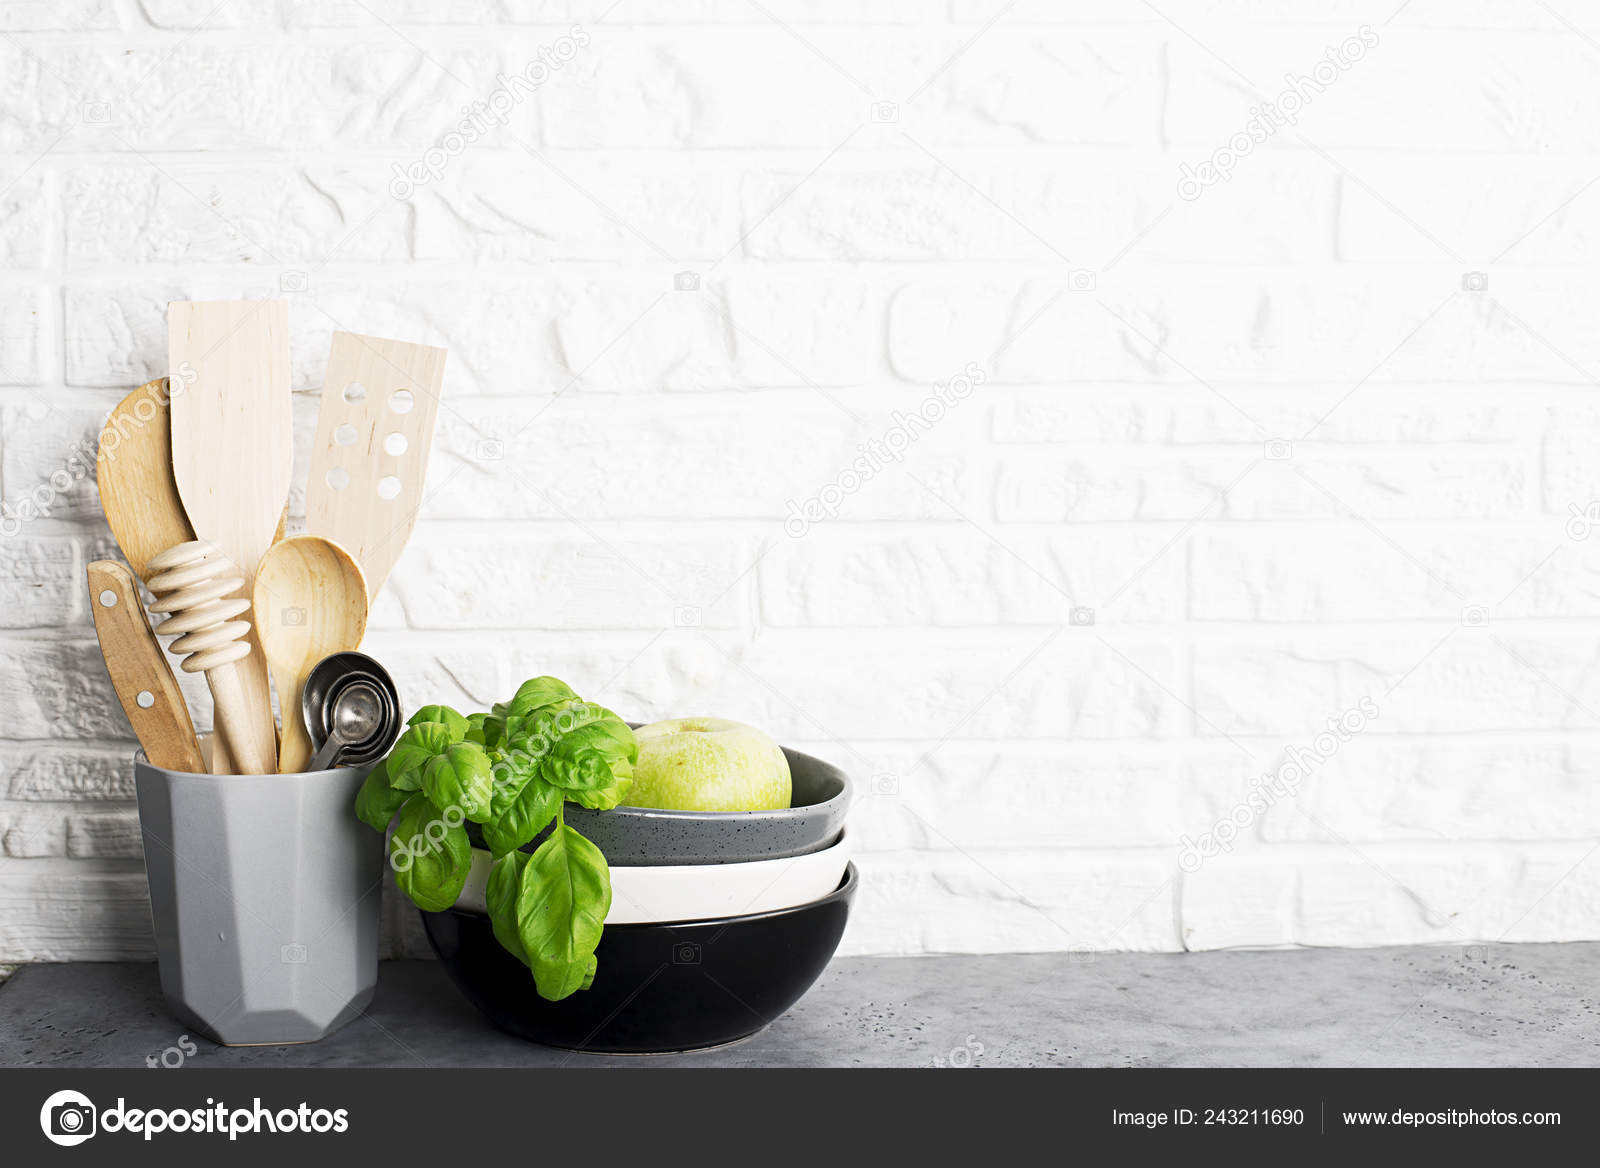 Kitchen Tools Olive Cutting Board Kitchen Shelf White Brick Wall Stock Photo C Ileishanna 243211690